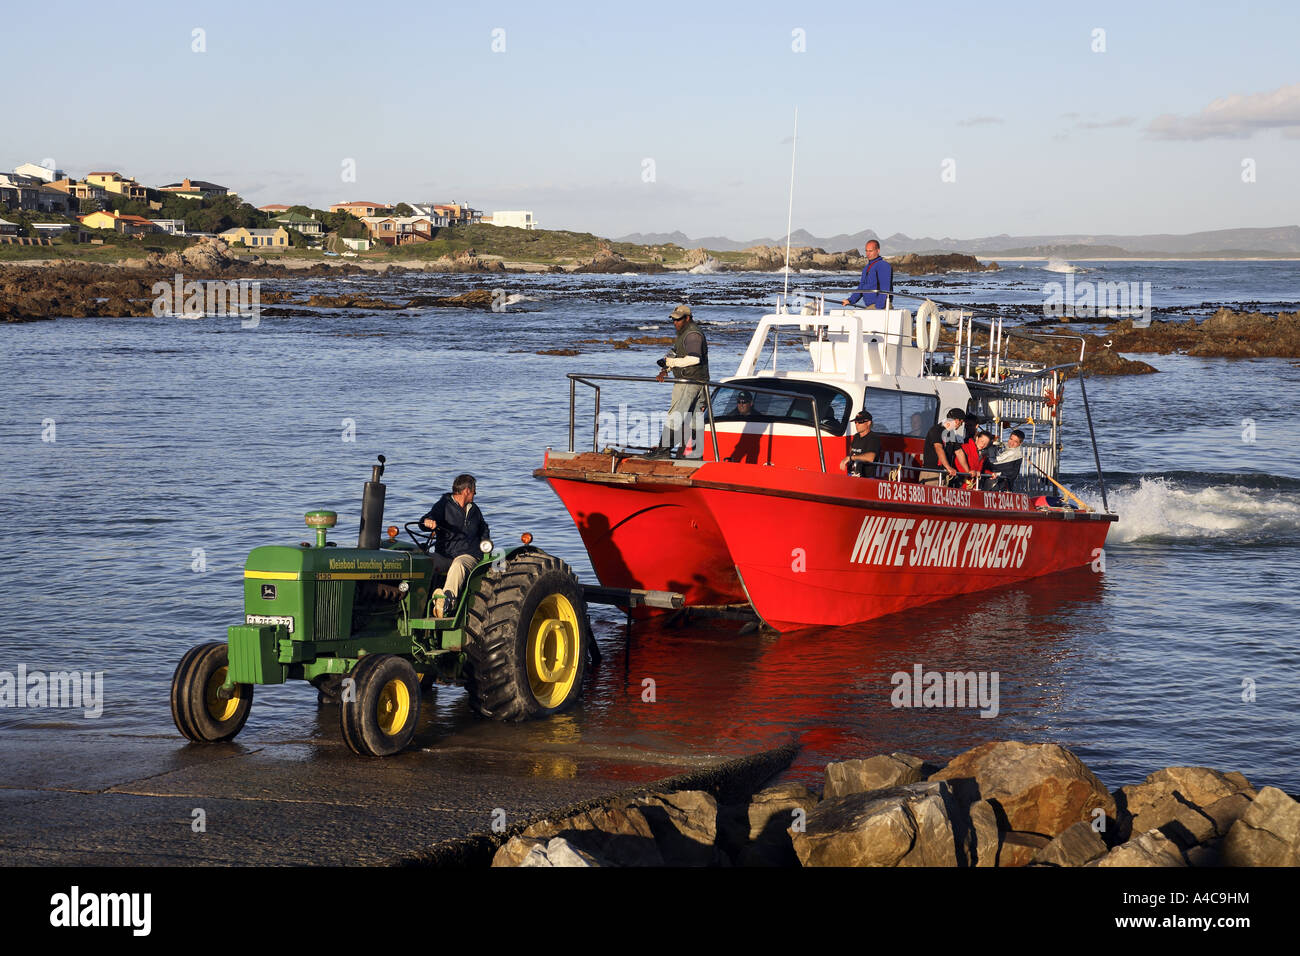 Tractor Pull Boats : Tractor towing boat on quay stock photo royalty free